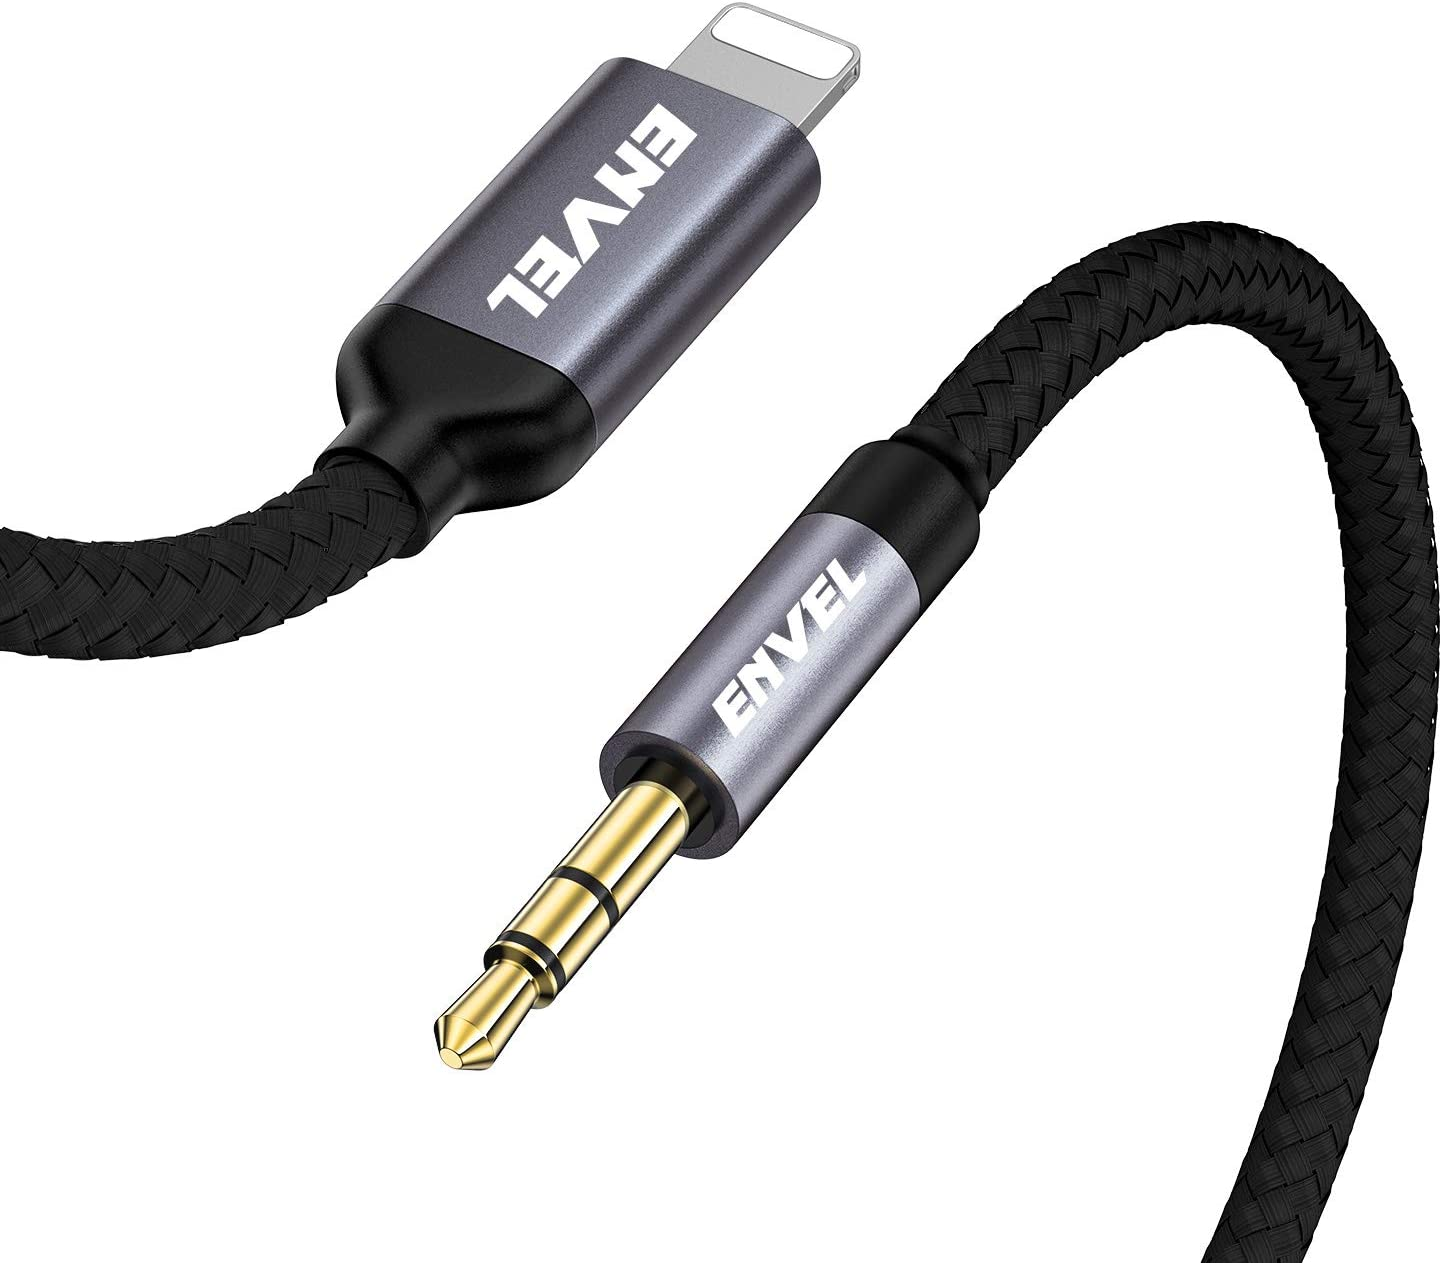 Support Newest iOS 11.4//12//13.1 ENVEL 3.5mm Aux Cable Compatible with iPhone,Aux Cord Compatible with iPhone 11//7//X//8//8 Plus//XS Max//XR to Car Stereo//Speaker//Headphone Adapter